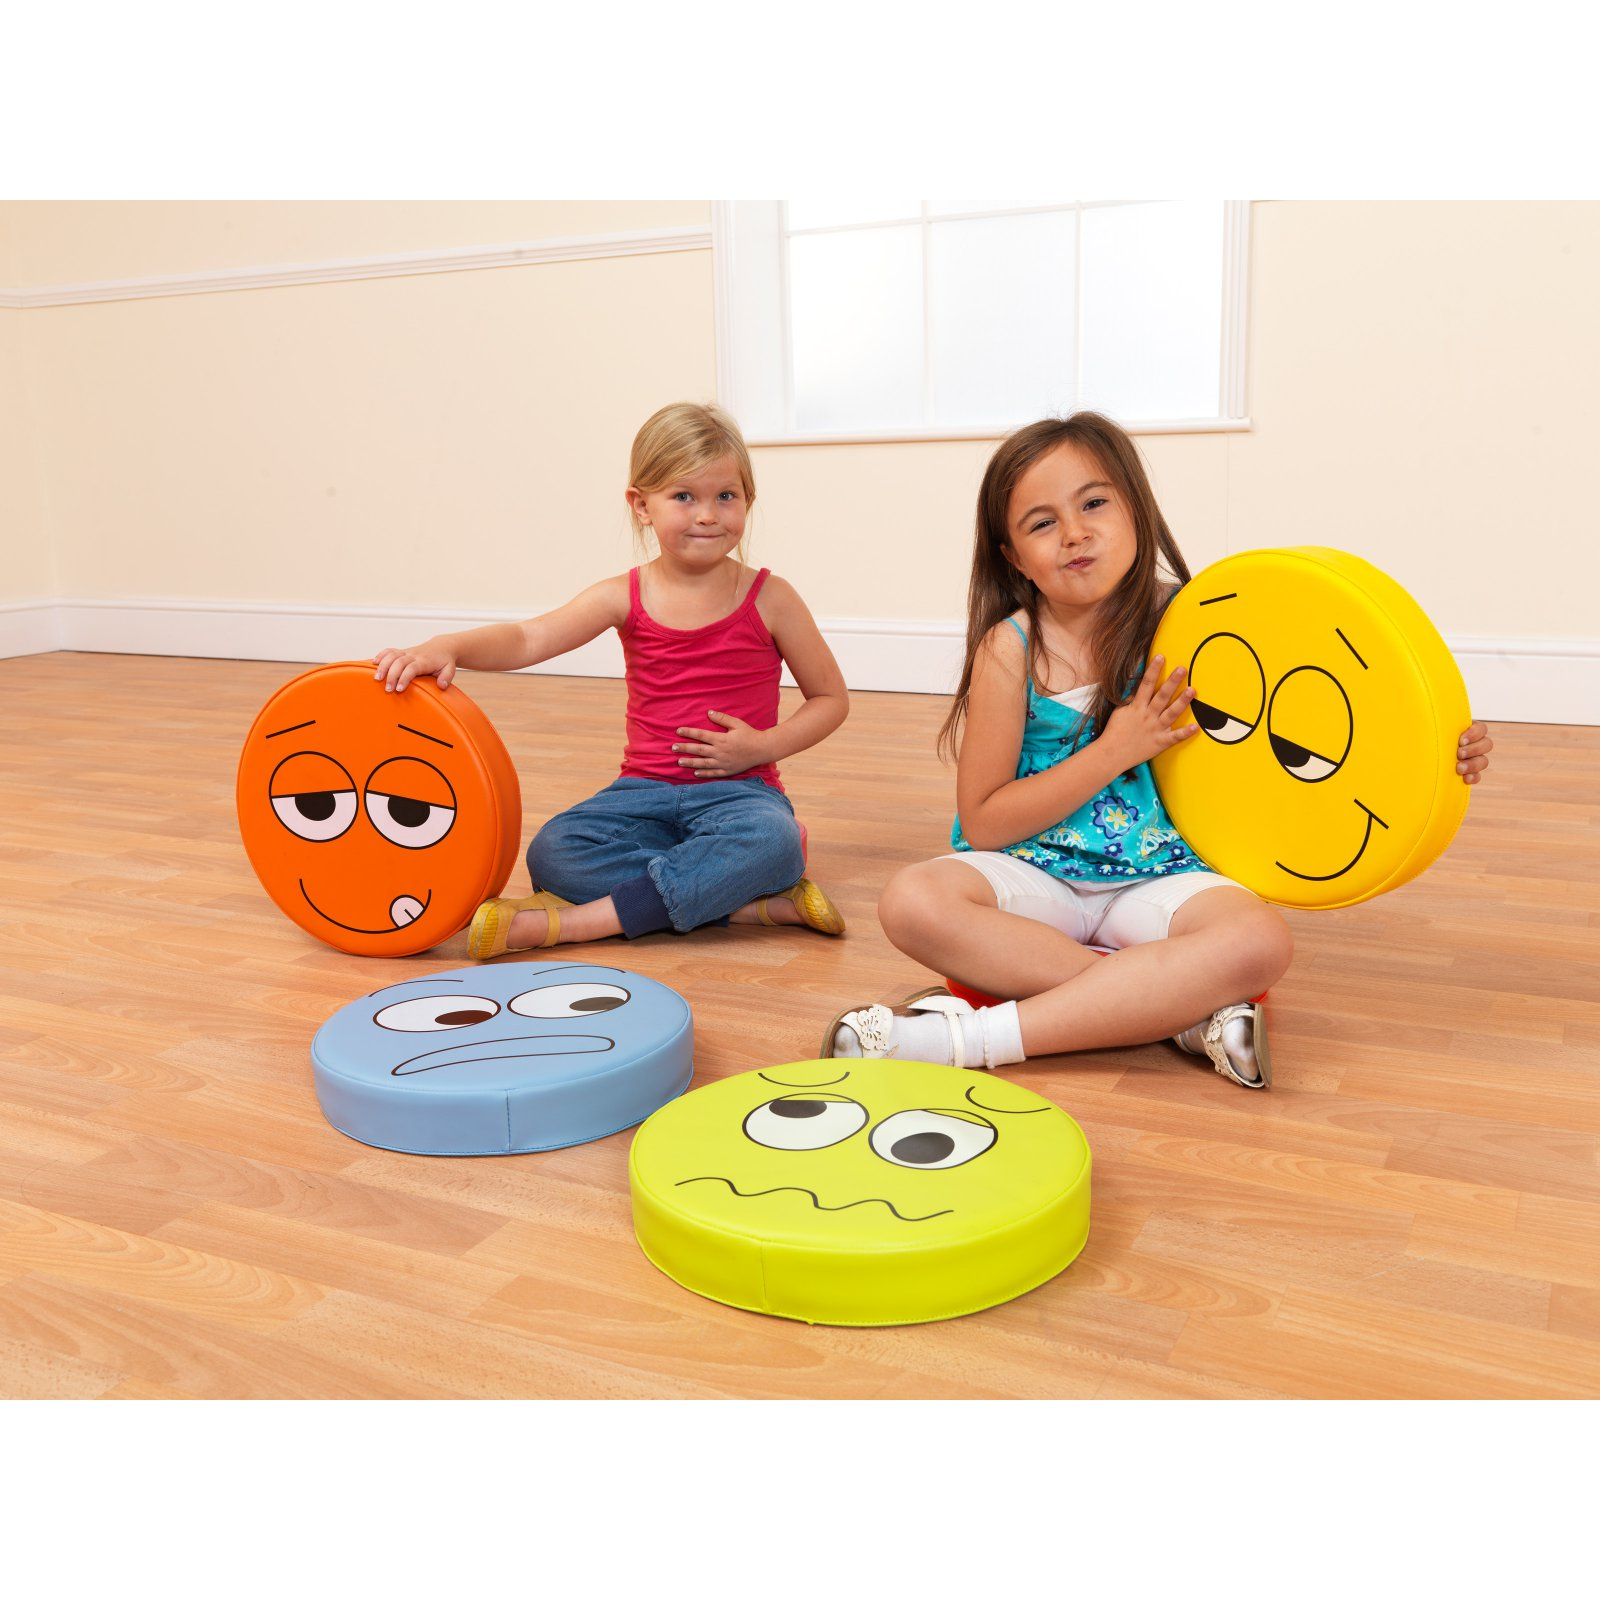 Kalokids Emotions Cushions - Pack 2